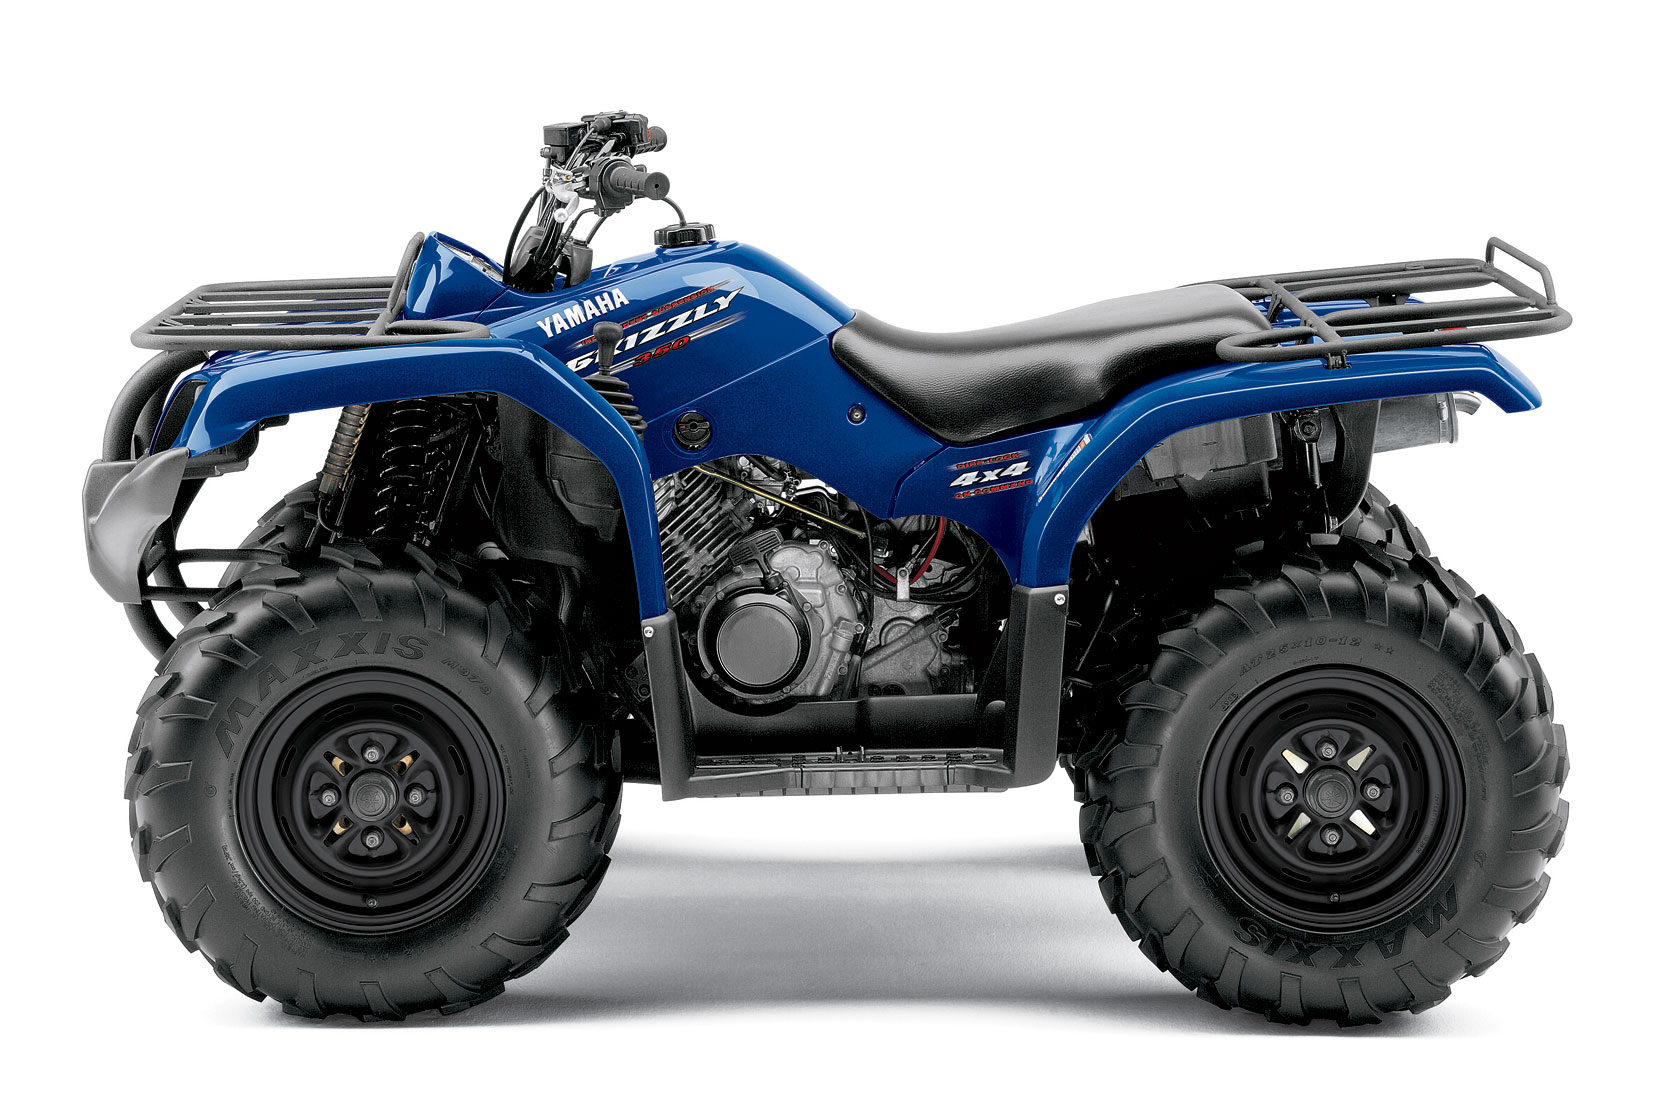 2010 yamaha grizzly 350 4x4 irs for Yamaha grizzly 4x4